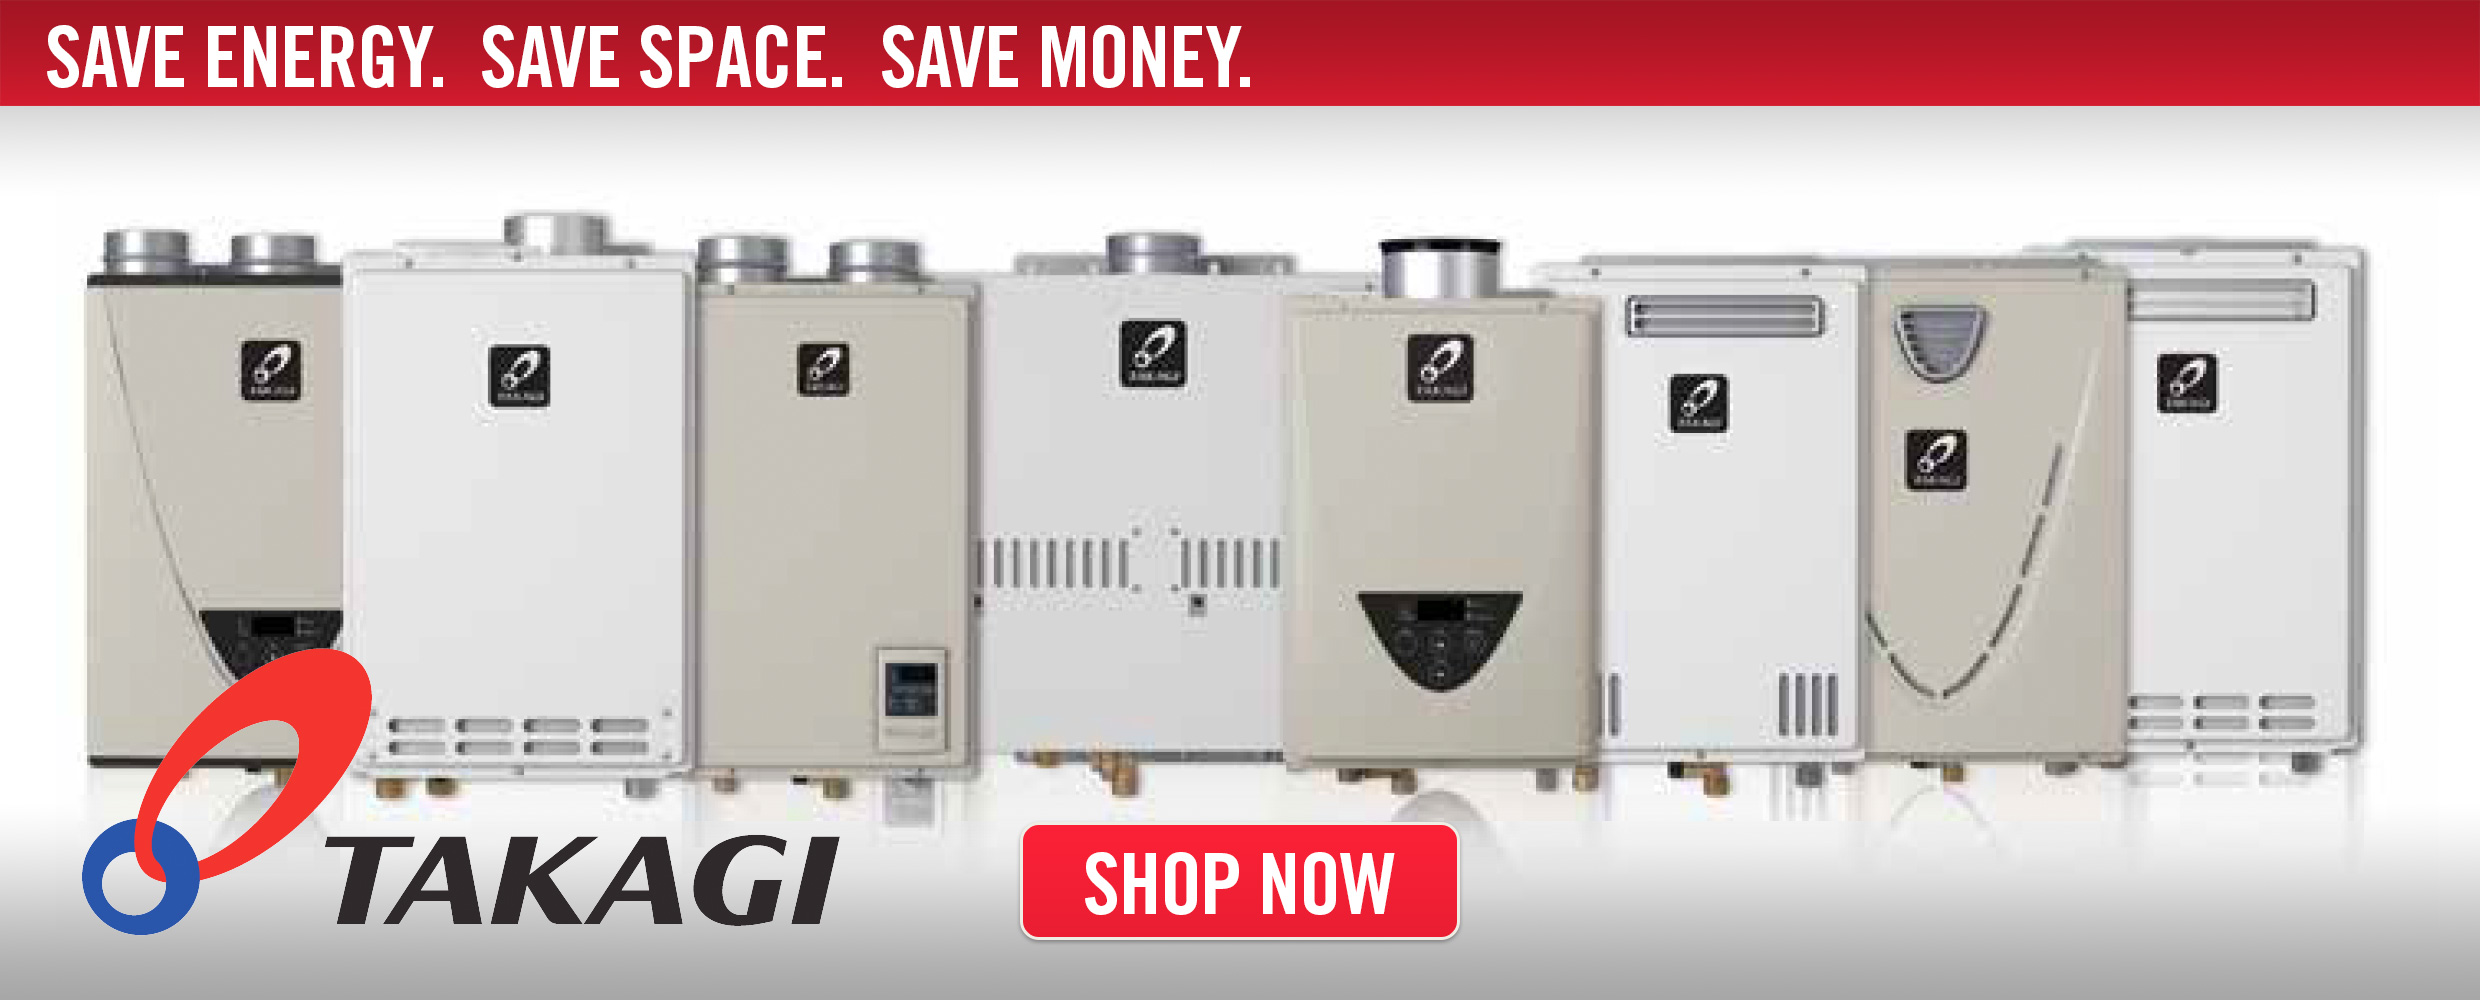 Takagi Tankless Water Heaters -